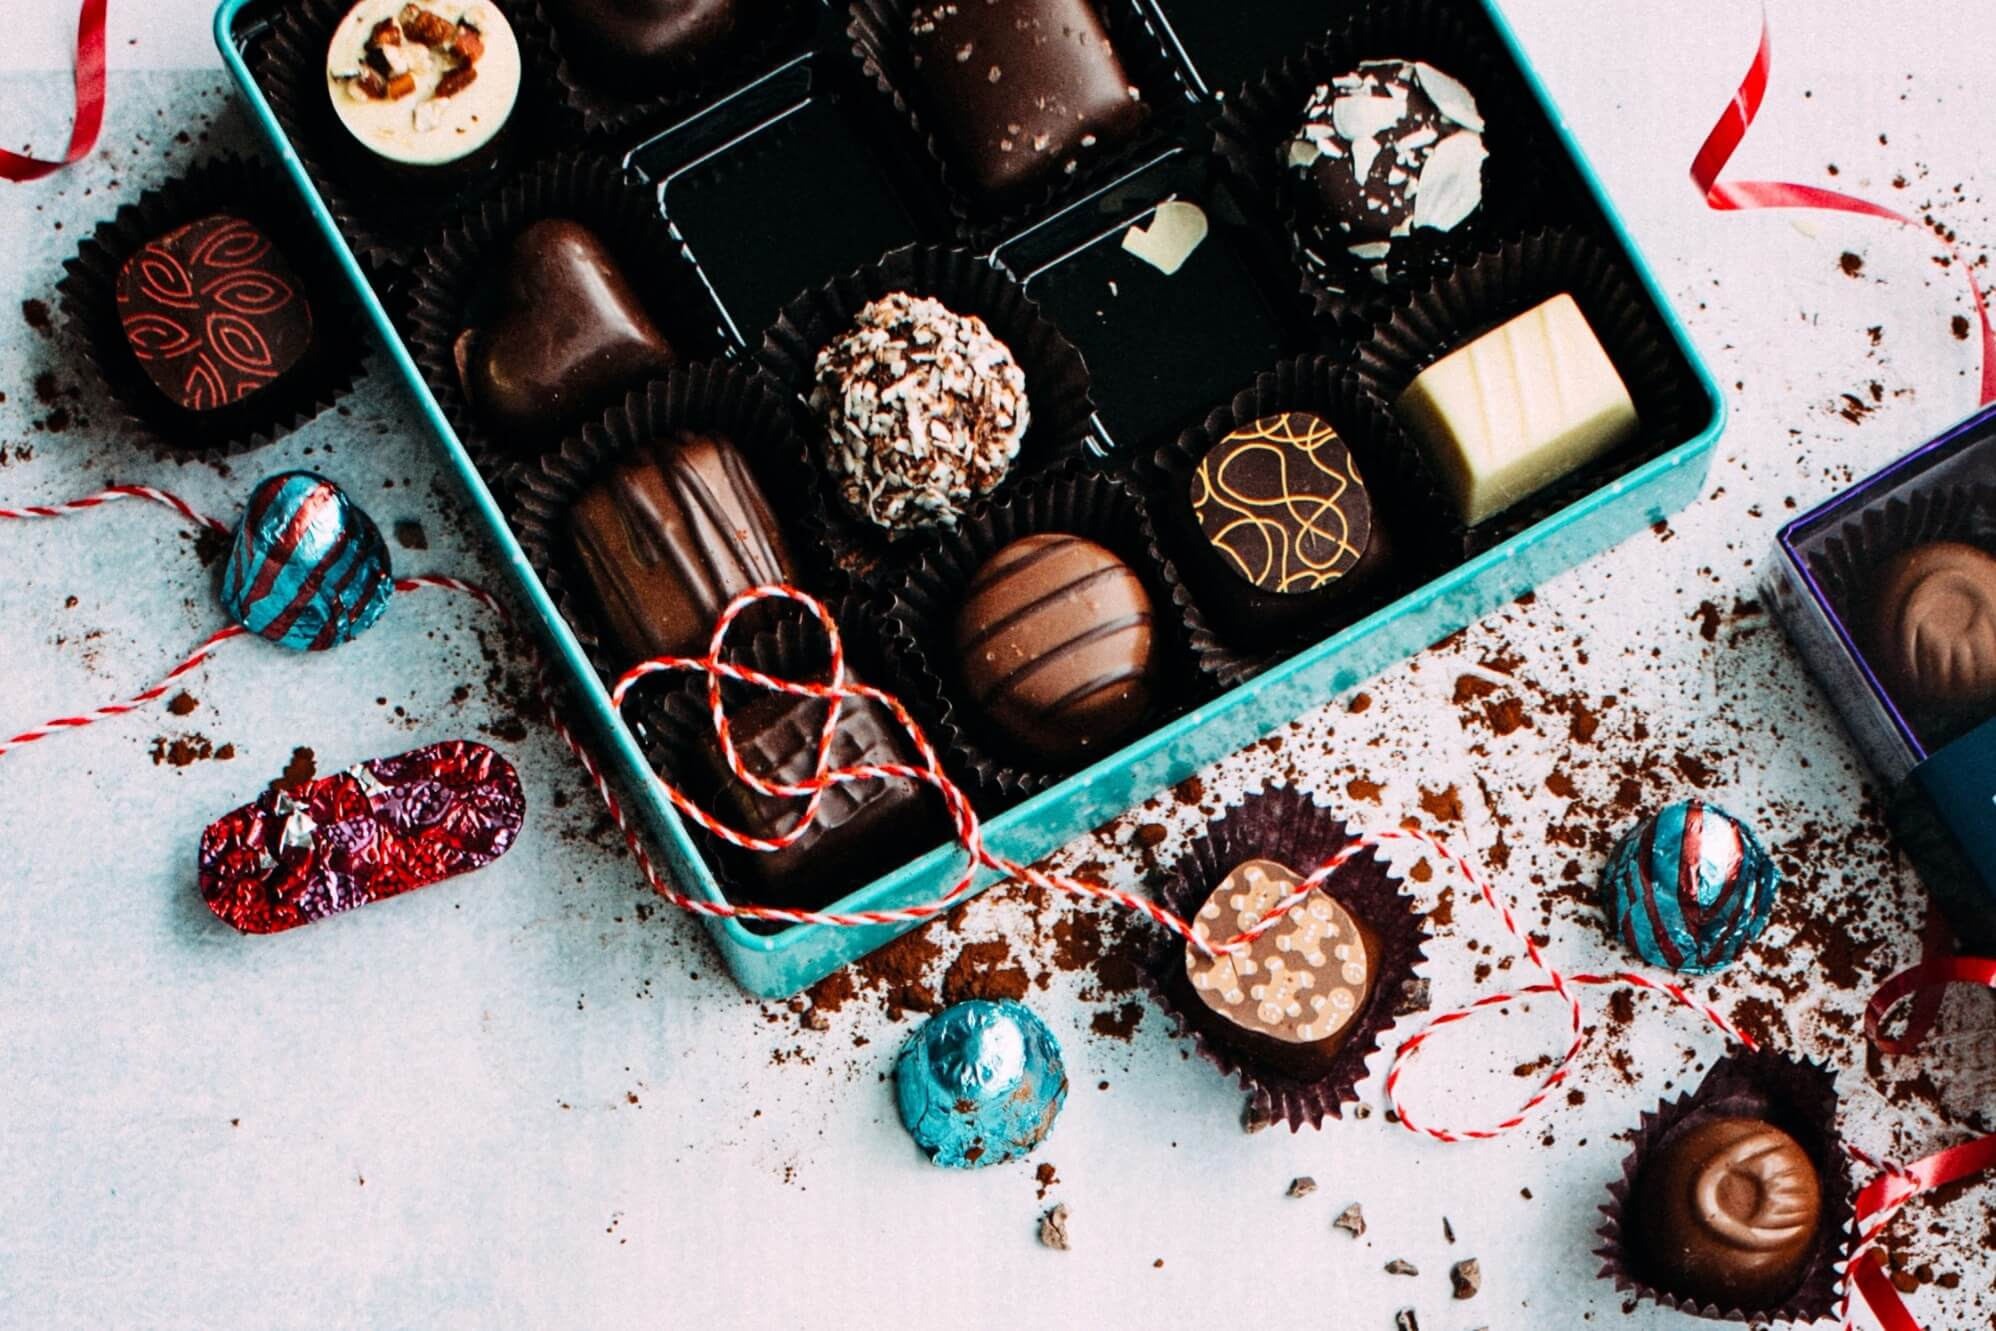 The Ultra Chocolate Tour of San Francisco is a walking food tour of San Francisco with chocolate and booze pairings, too!